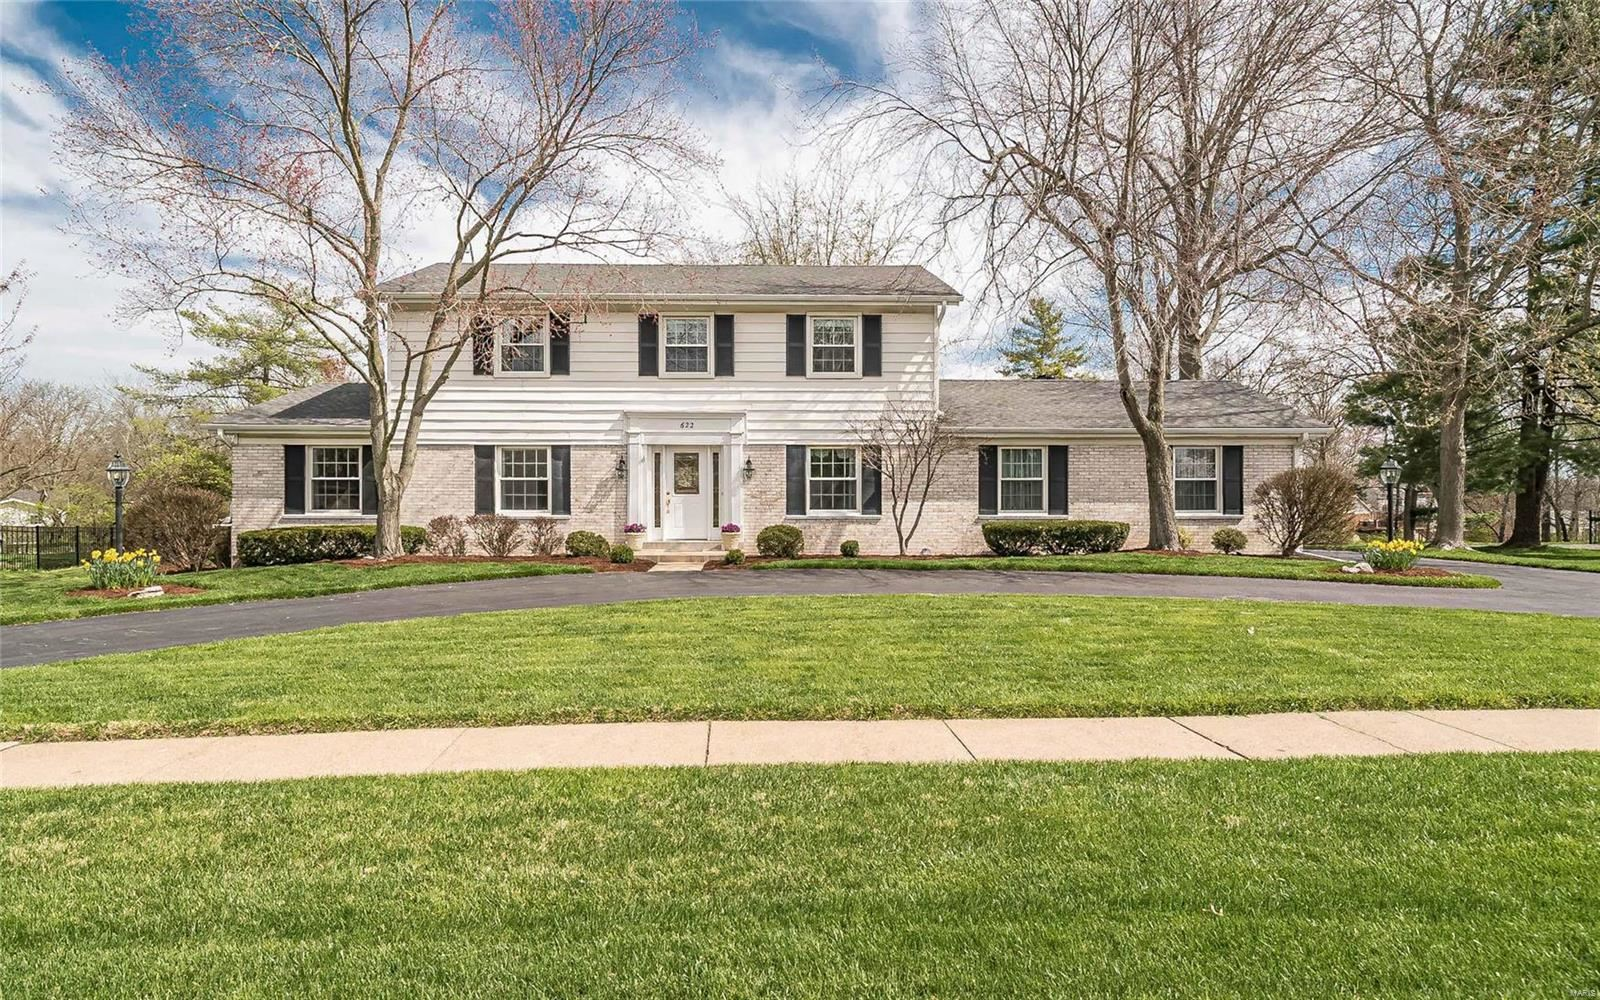 622 Packford Drive, Chesterfield, MO 63017 - MLS#: 20020623